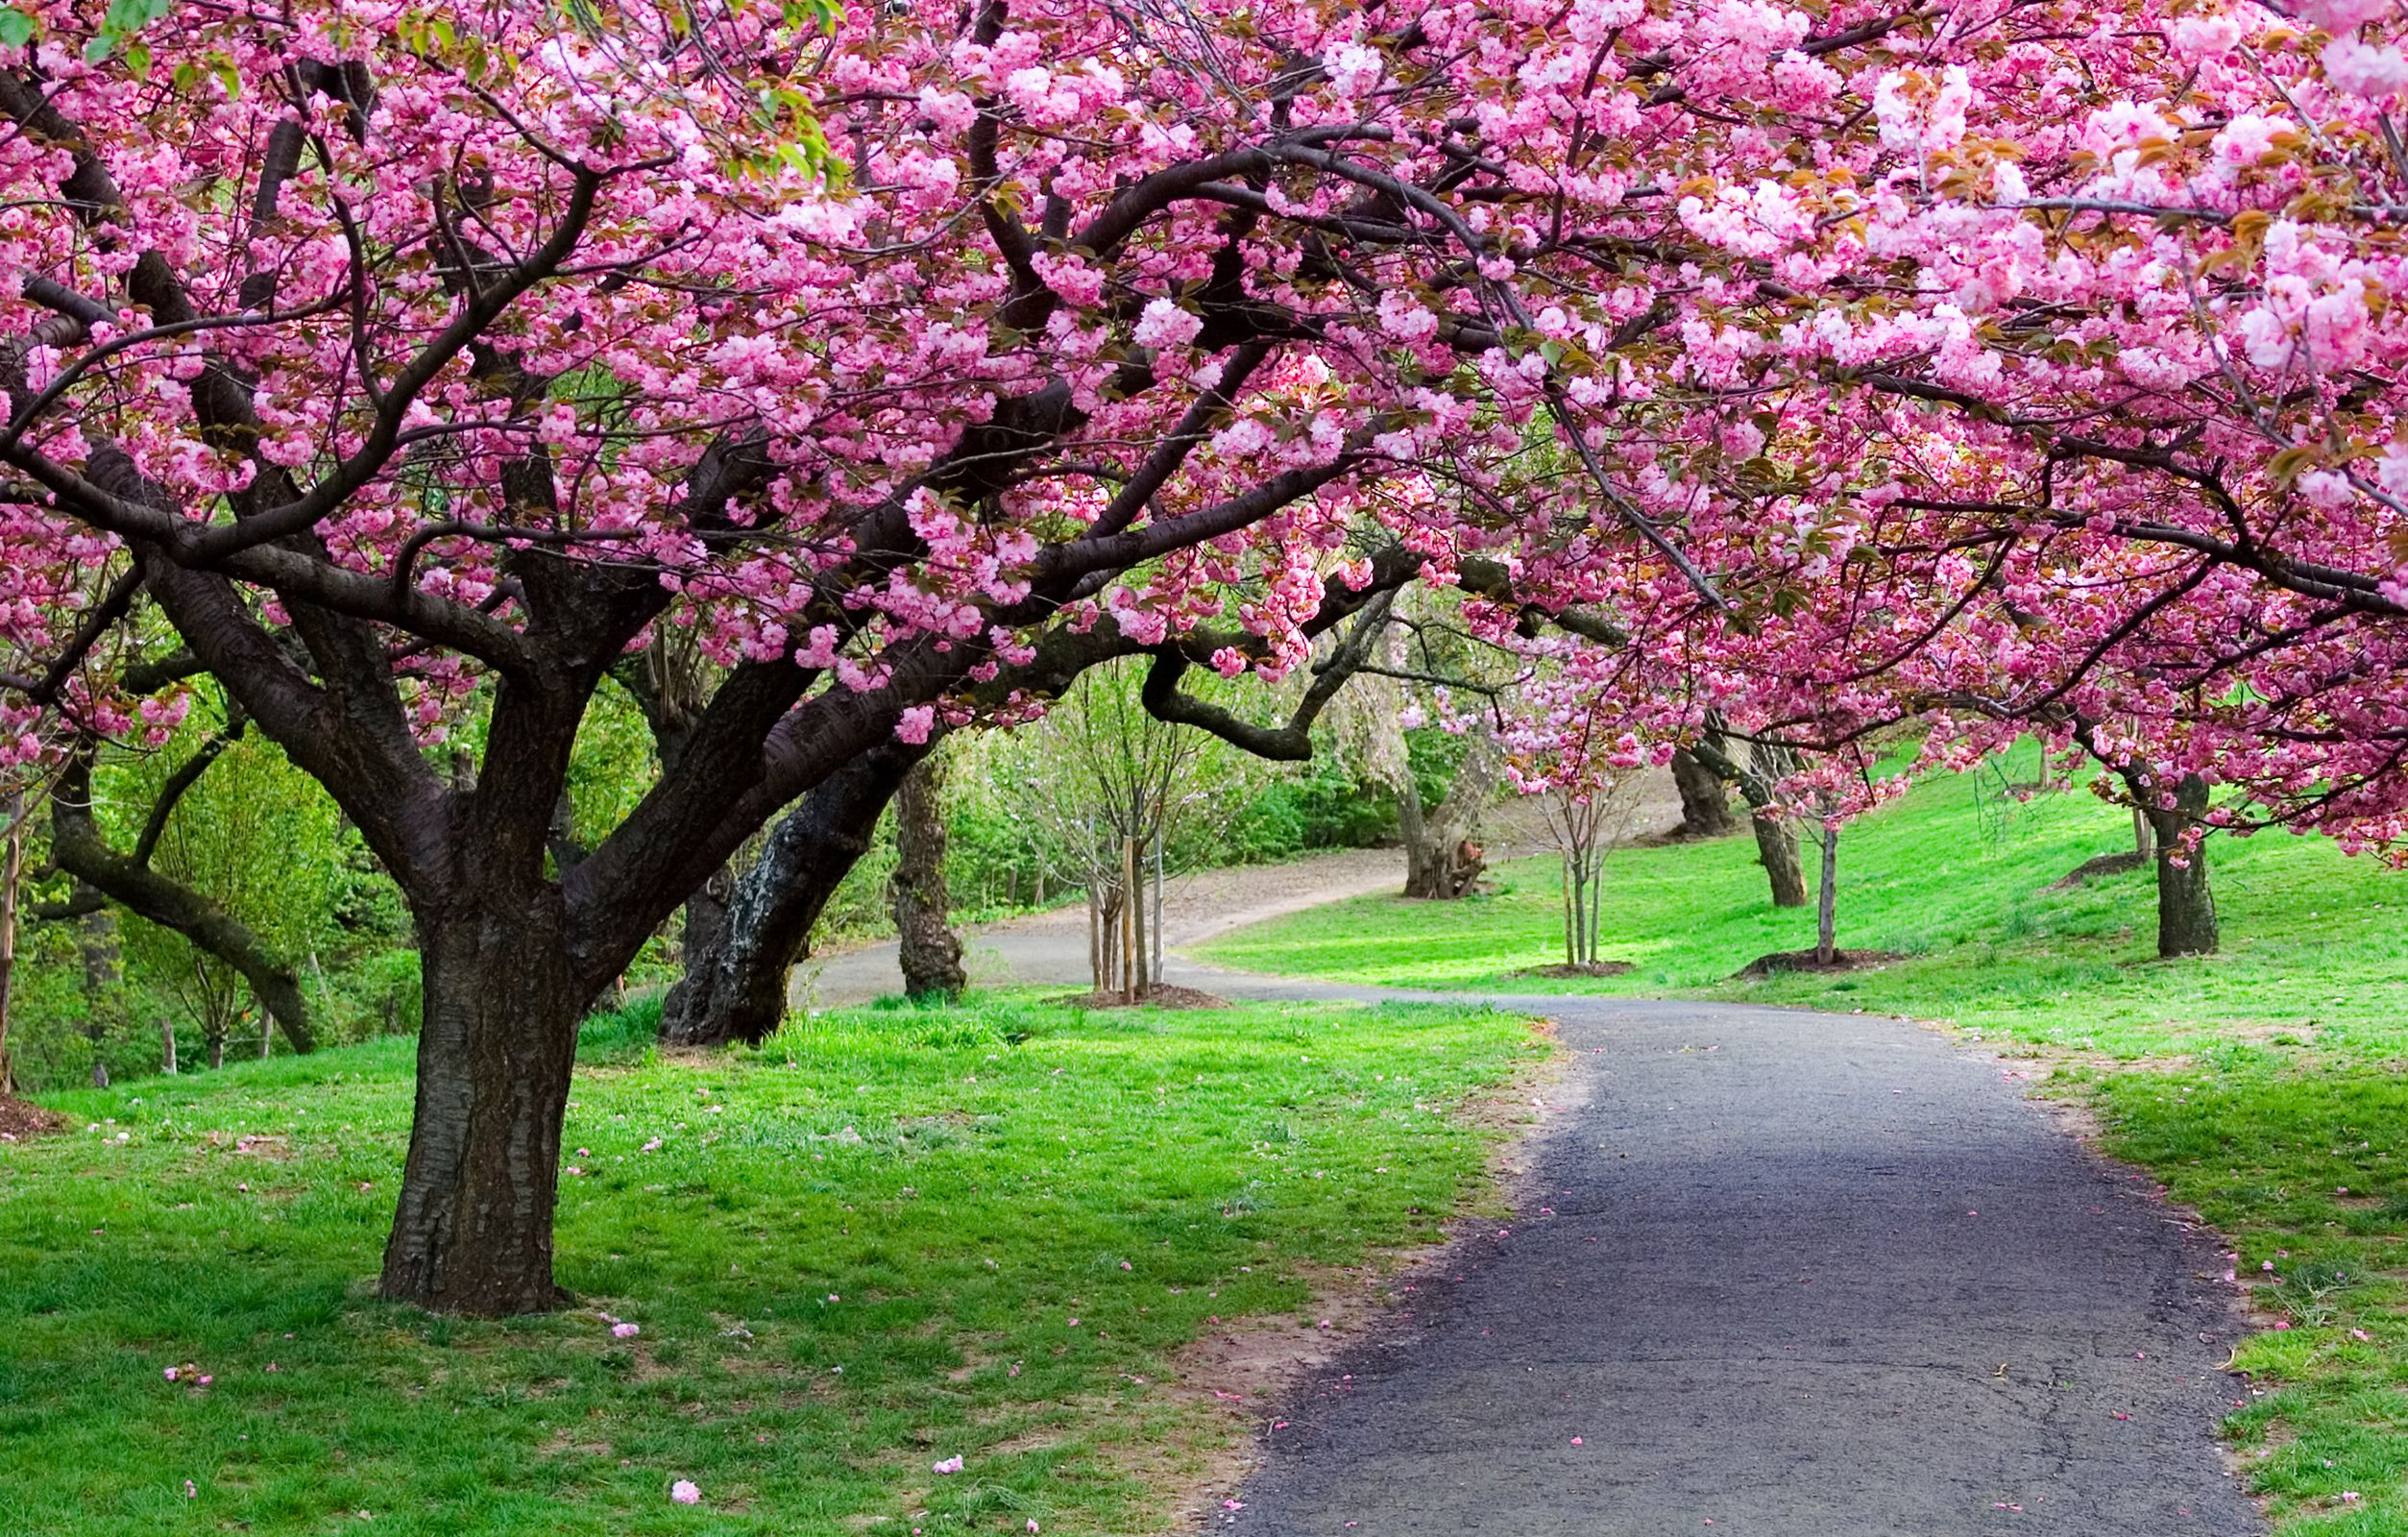 Nature Trees Forest Park Road Pathway Hd Desktop